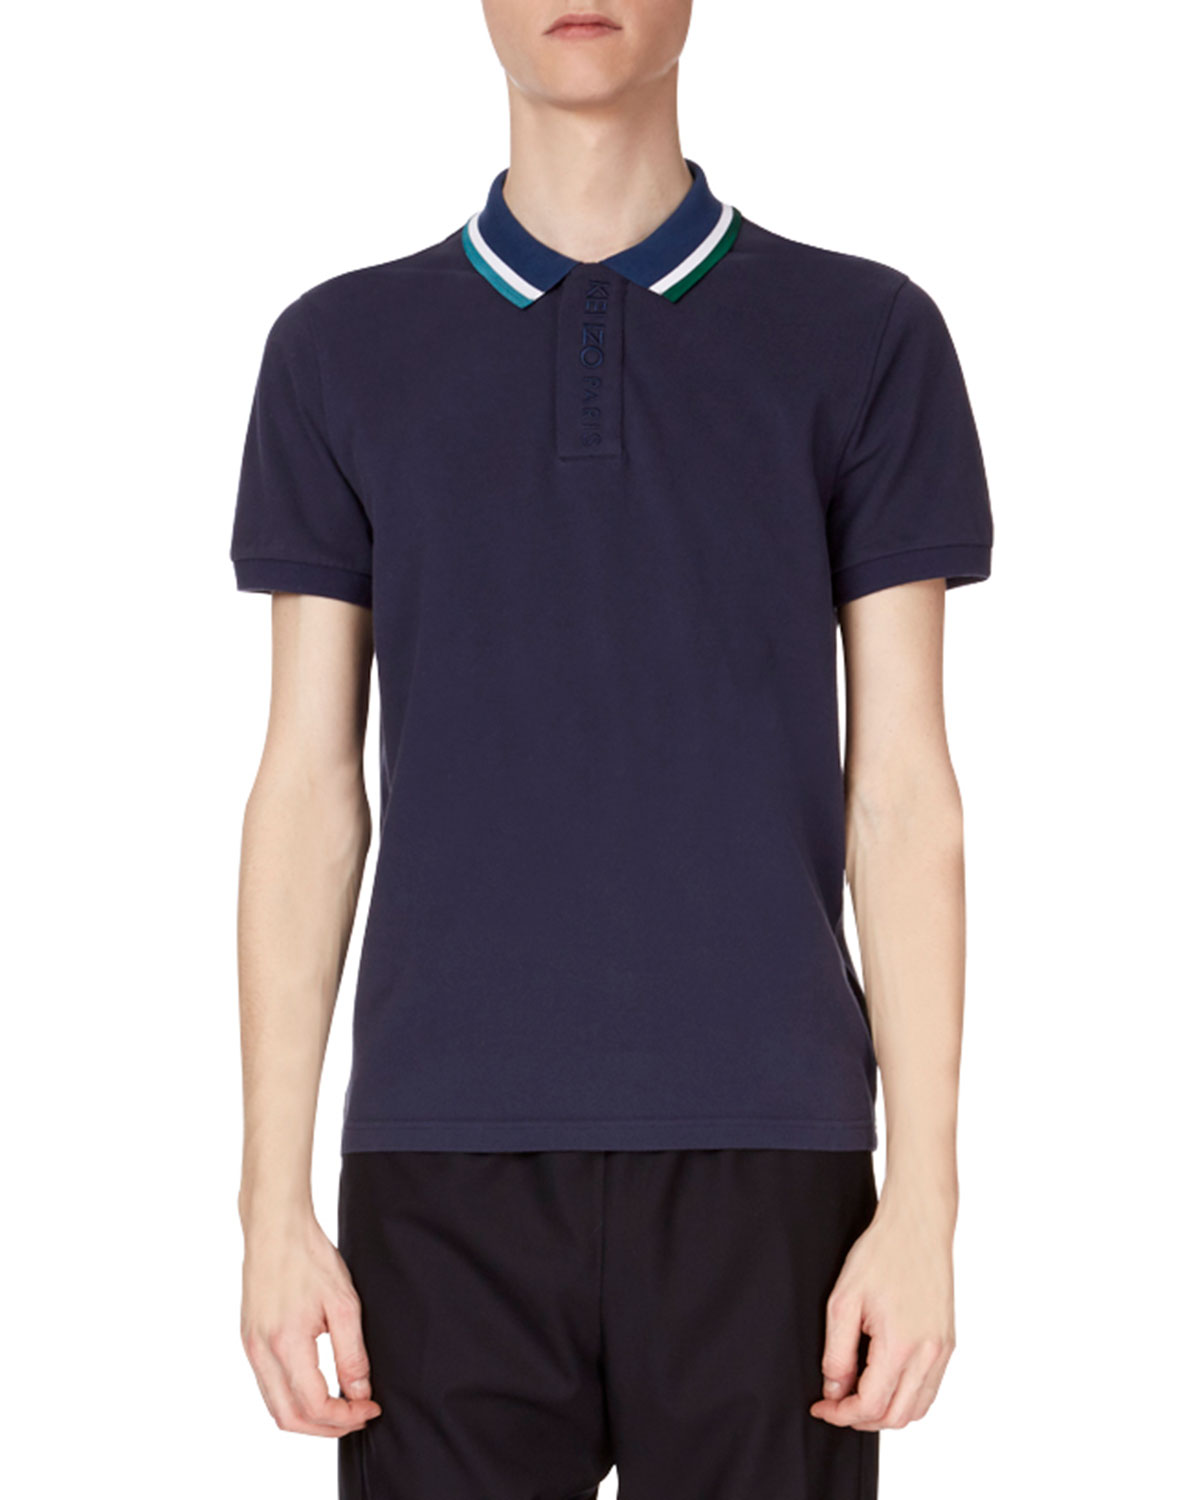 Kenzo Mens Placket Embroidered Striped Collar Short Sleeve Polo